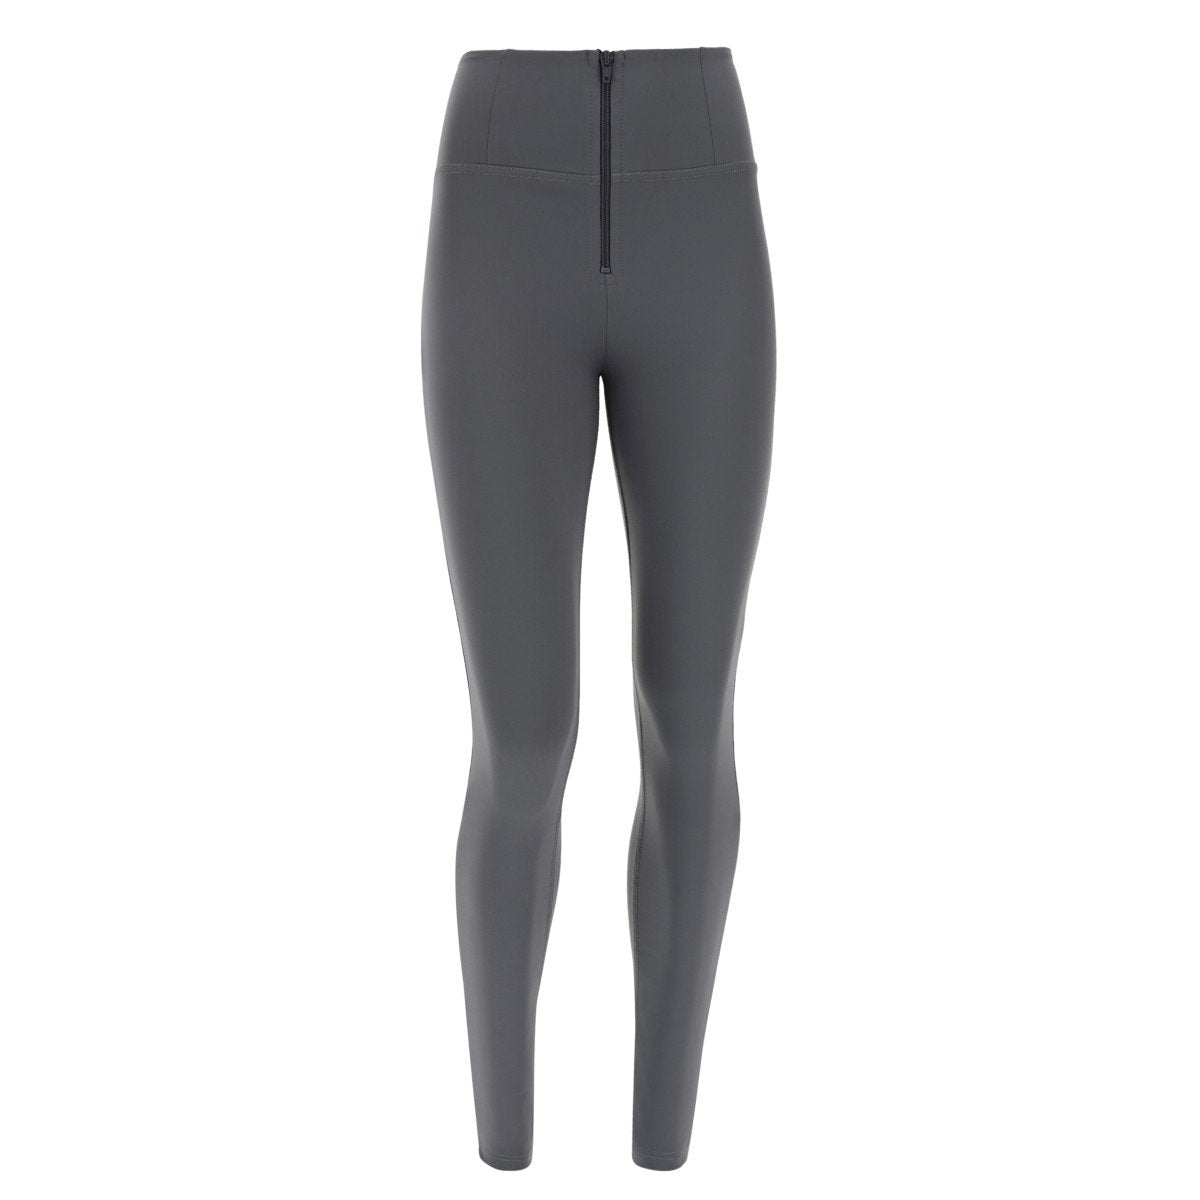 SKINNY GREY D.I.W.O.® PRO BEAUTY EFFECT HIGH WAIST SELF TONE ZIP